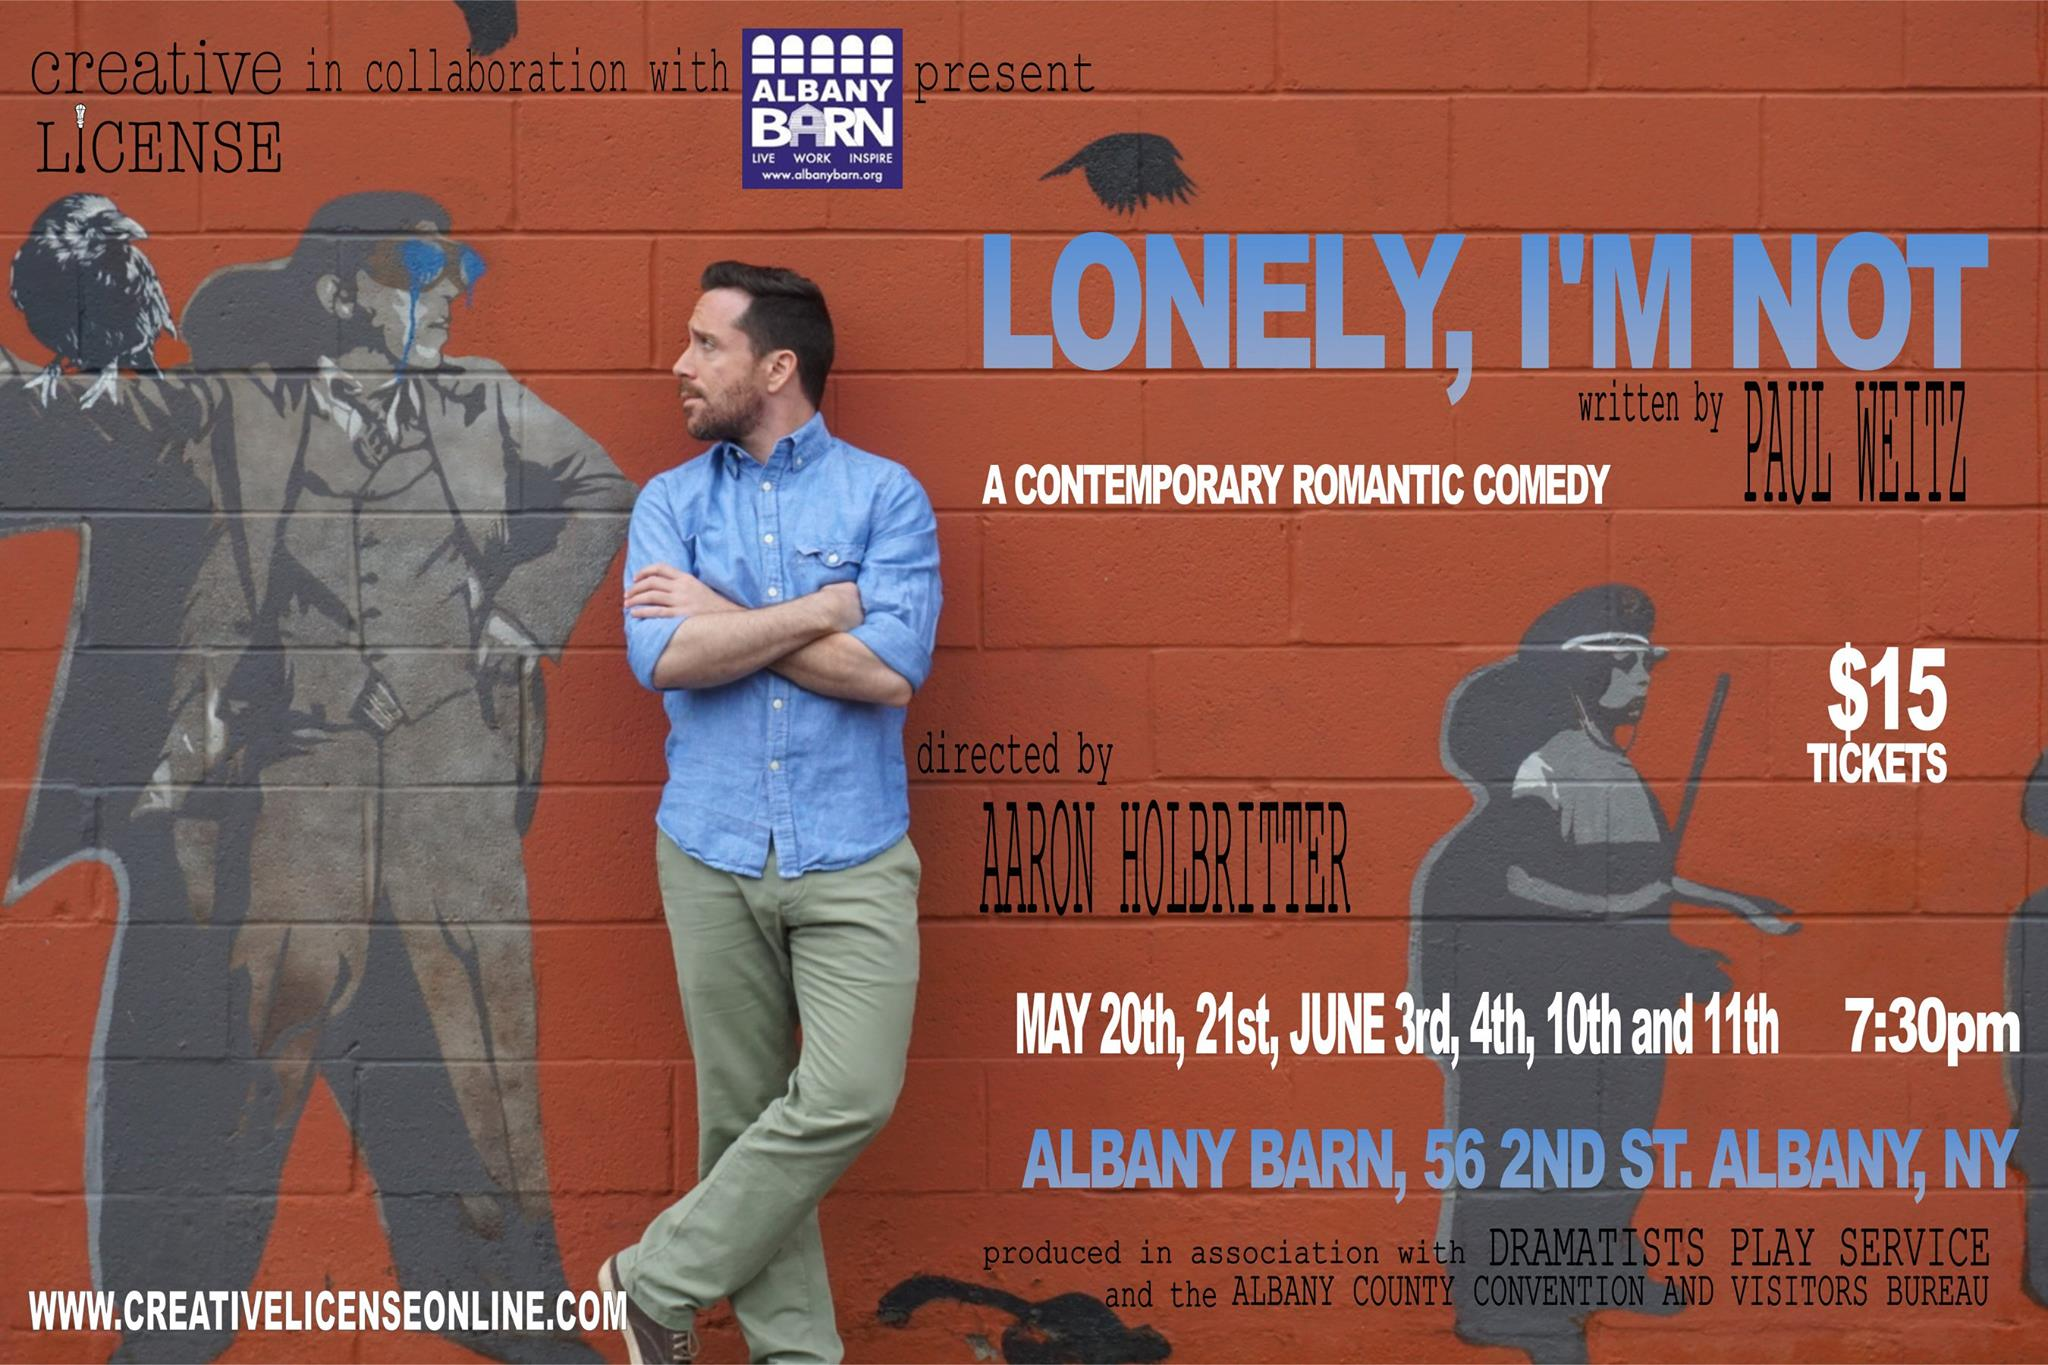 Creative License's LONELY, IM NOT Opening Tomorrow Night At The Barn!